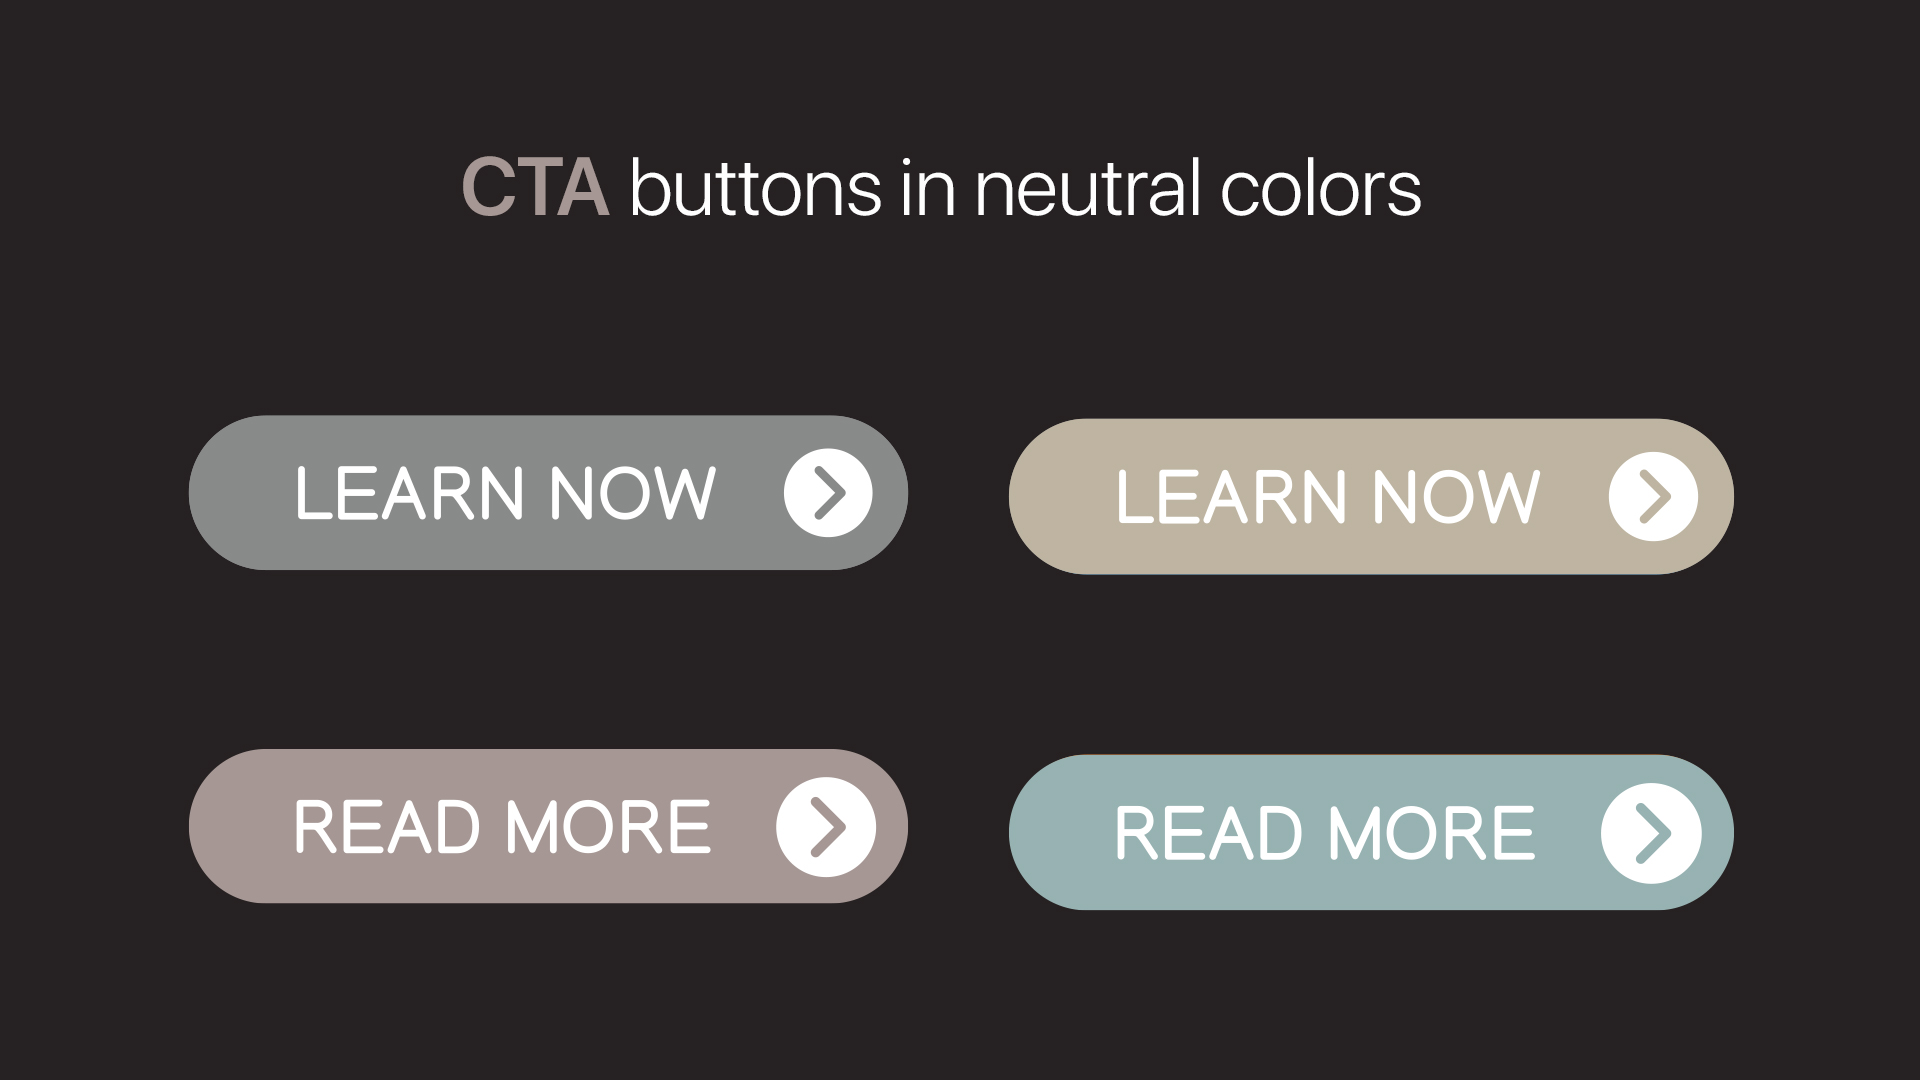 CTA buttons with neutral colors in the background